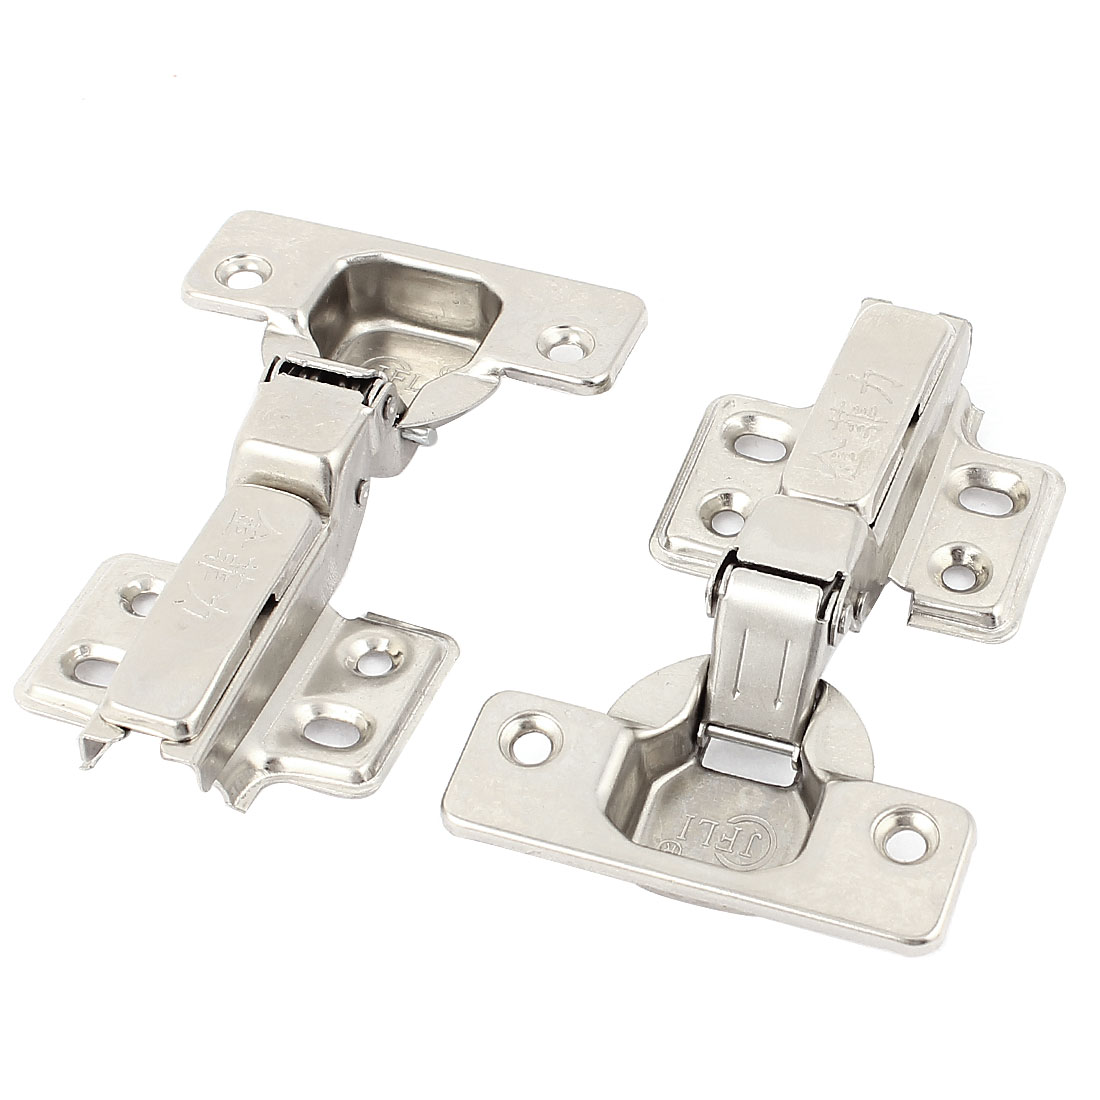 Cabinet Cupboard Door Self Closing Half Overlay Concealed Hinges Hardware 2 Pcs